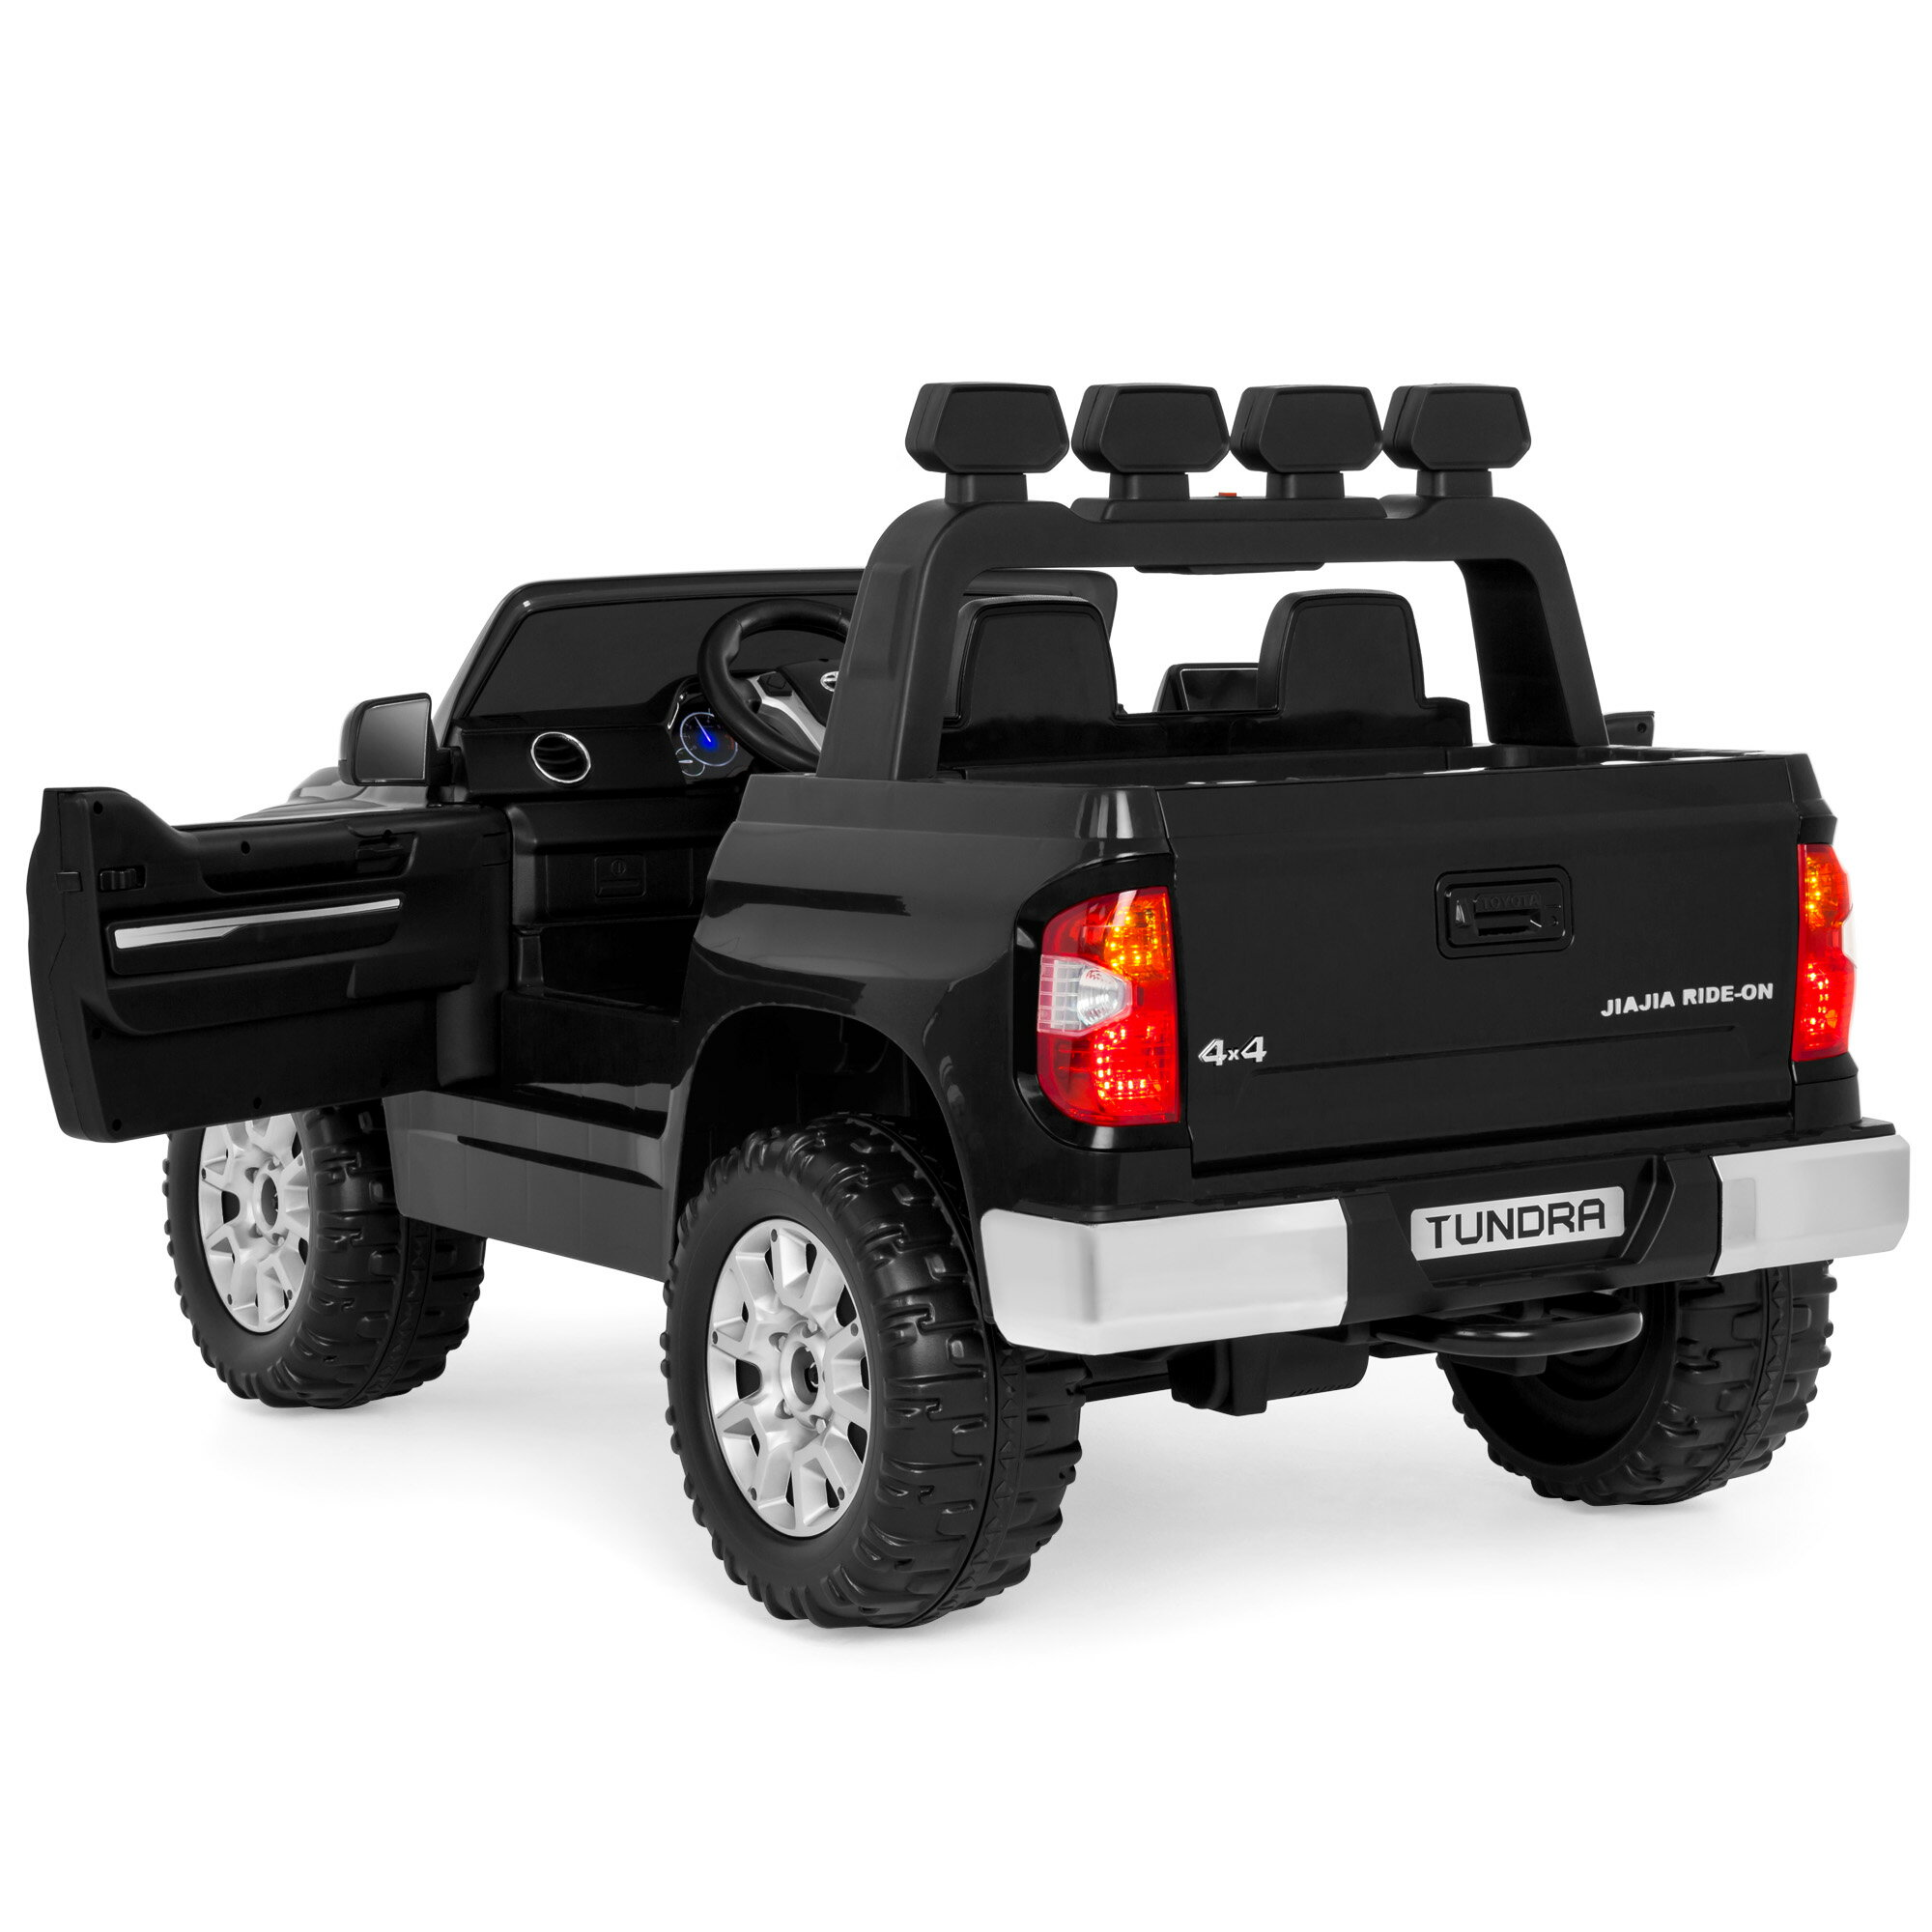 57f557ec8 Best Choice Products 12V Kids Battery Powered Remote Control Toyota Tundra  Ride On Truck - Black